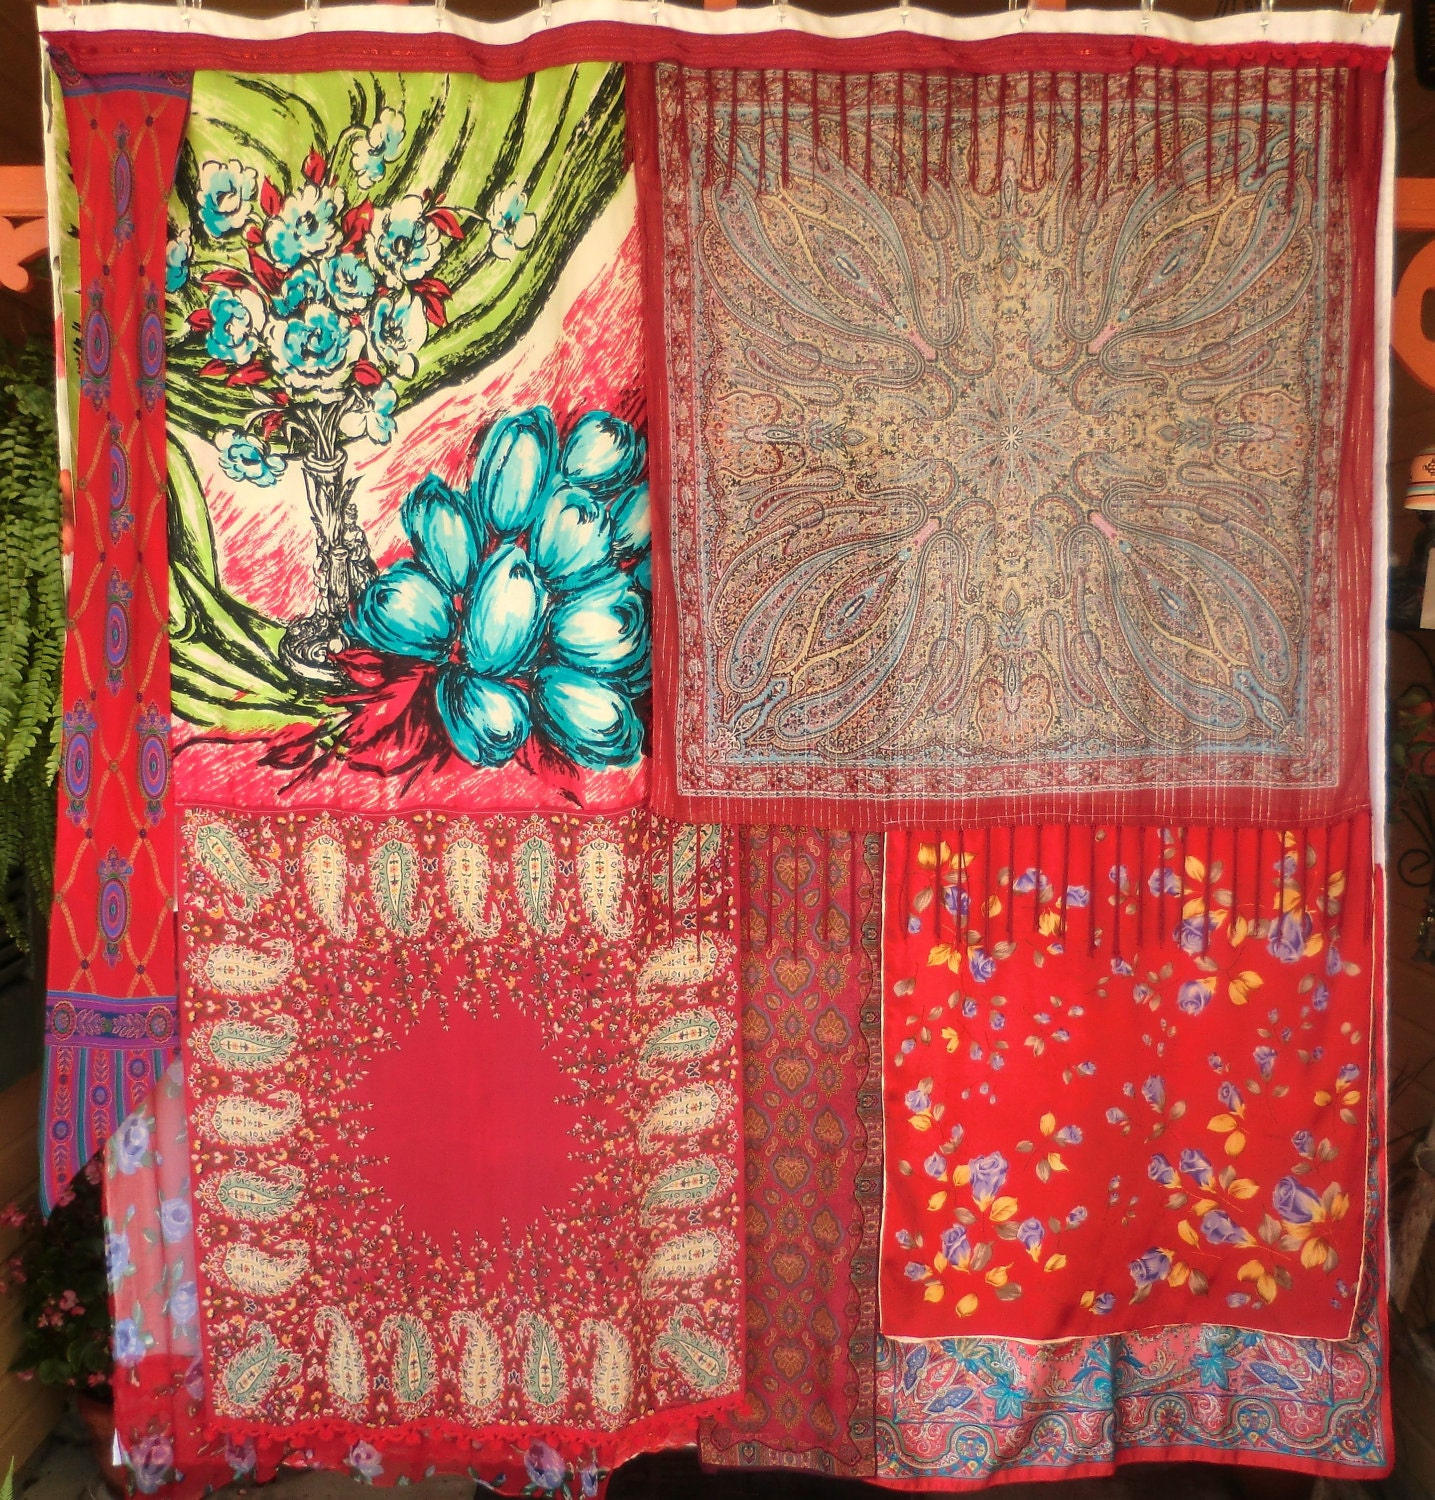 Marrakesh Market Handmade Gypsy Shower Curtain Bohemian